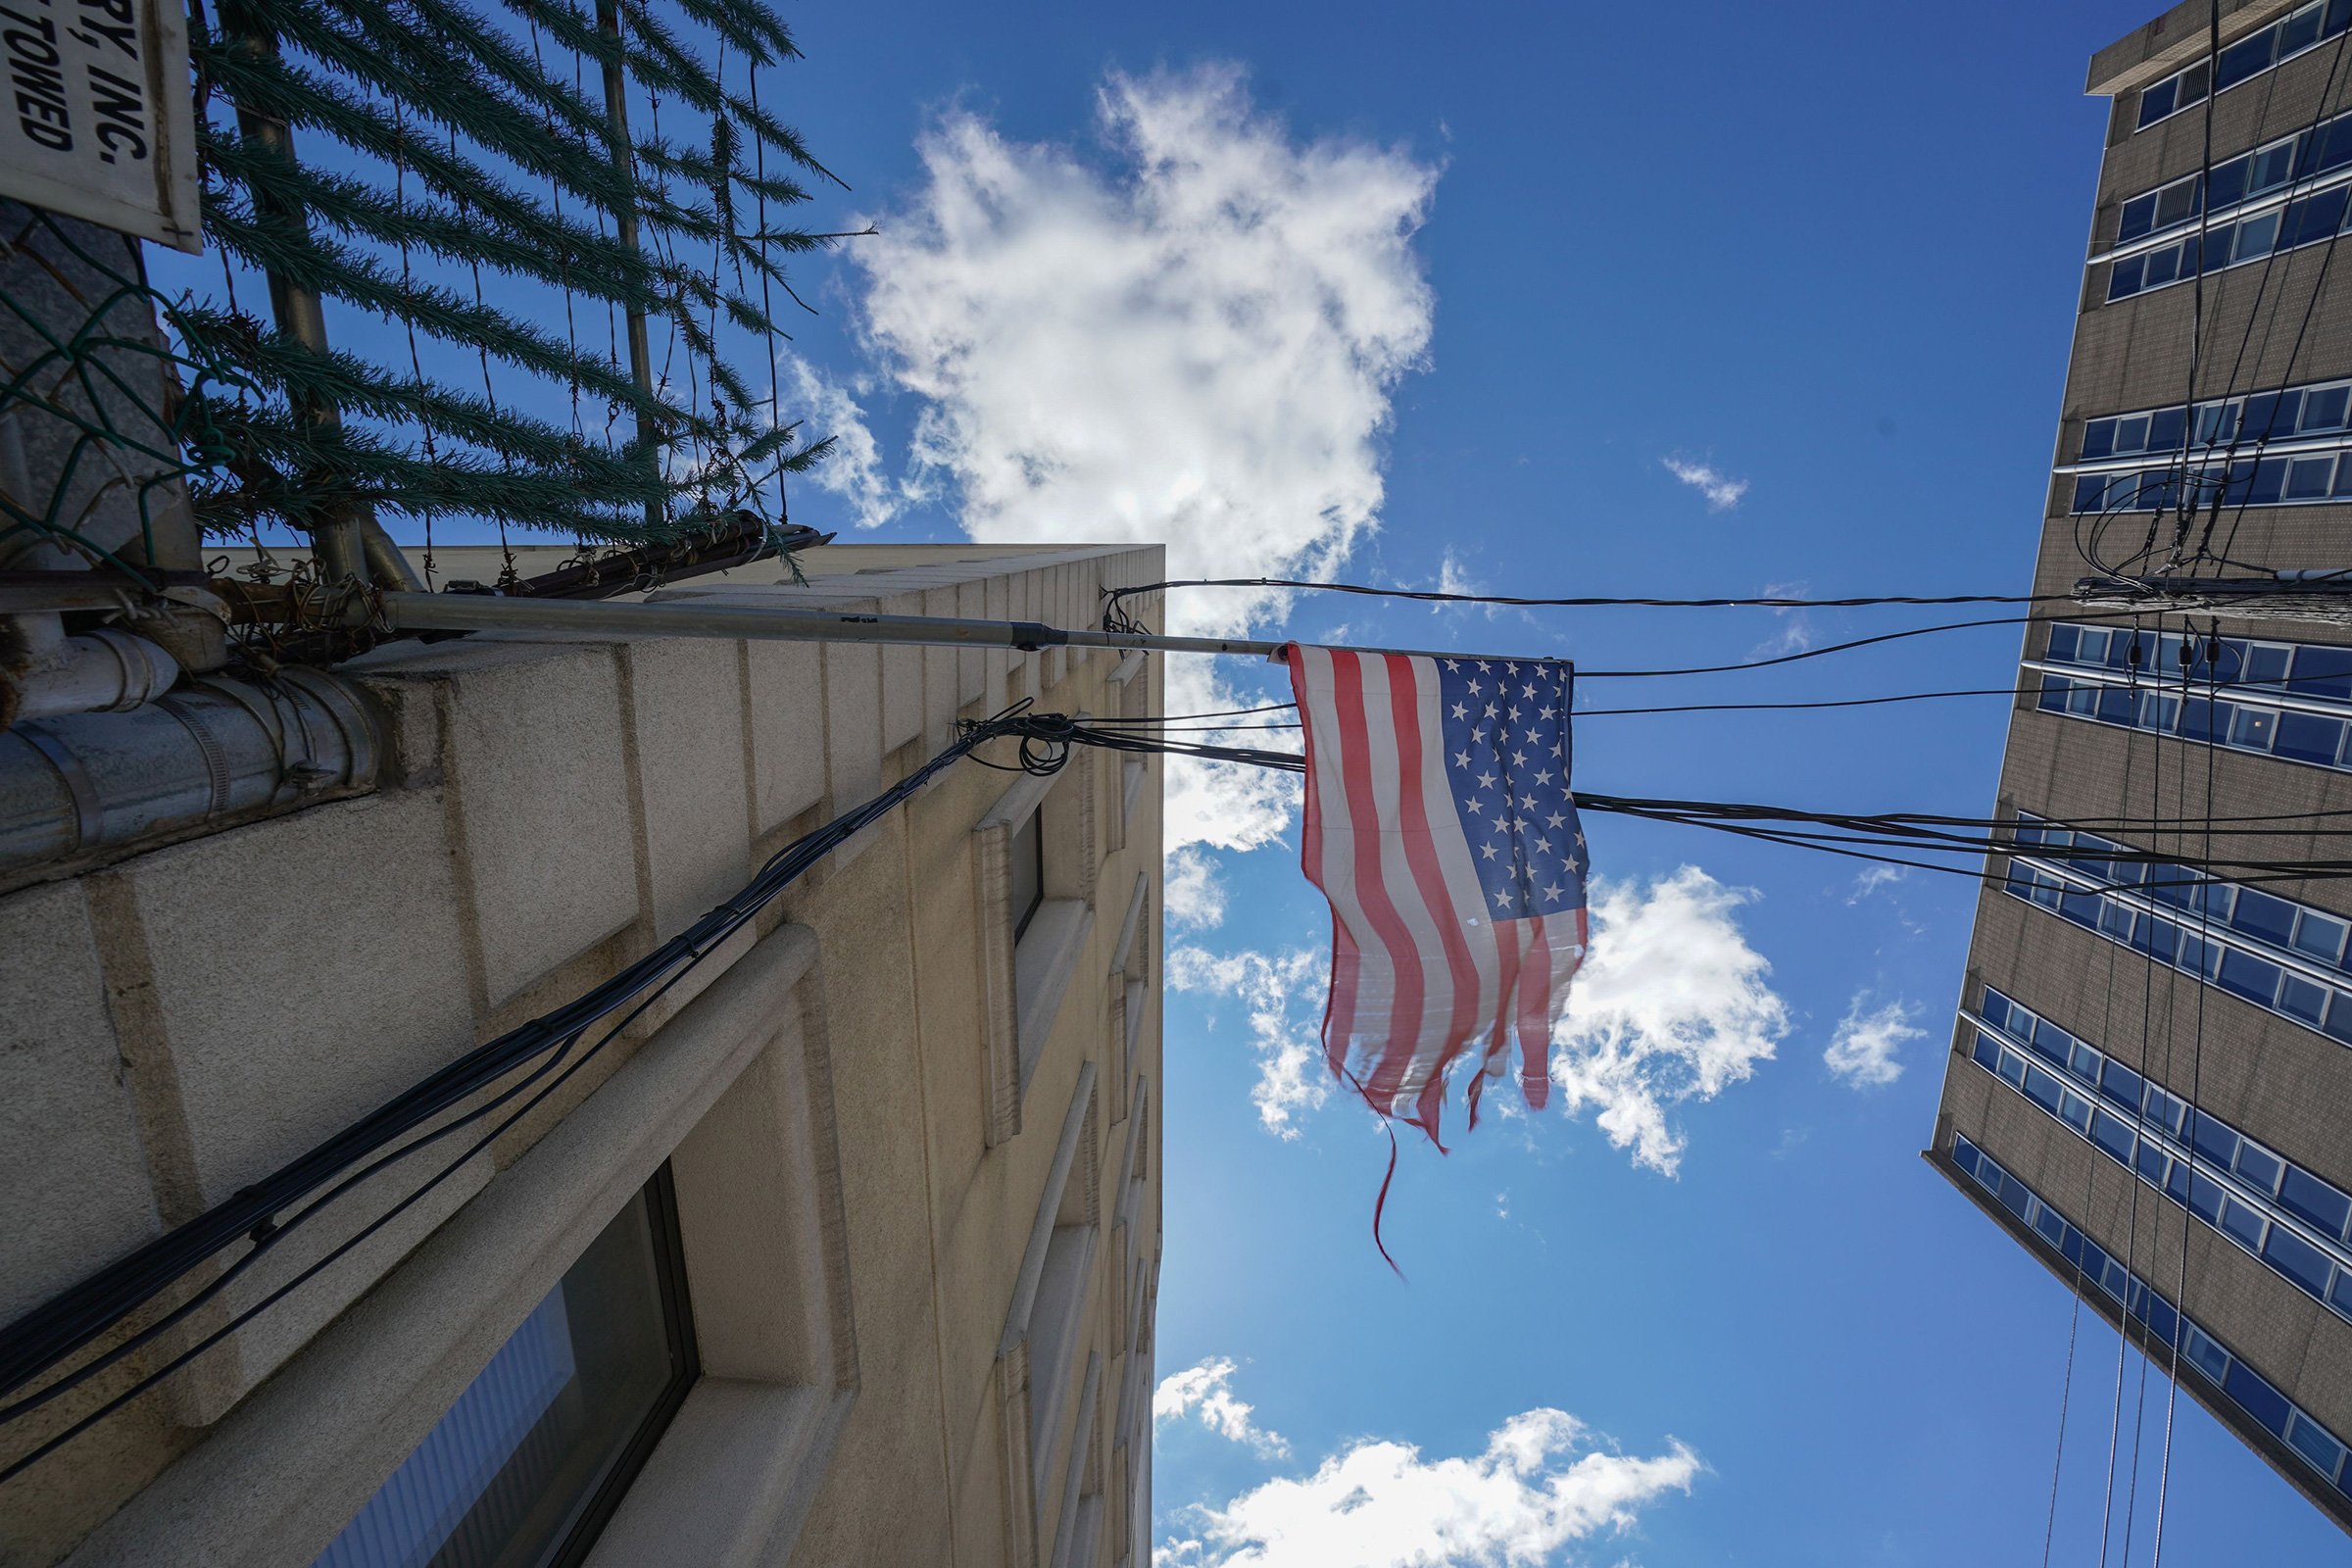 A tattered American flag hangs from a fence across the street from Wyckoff Hospital in Brooklyn, N.Y. on April 4, 2020.